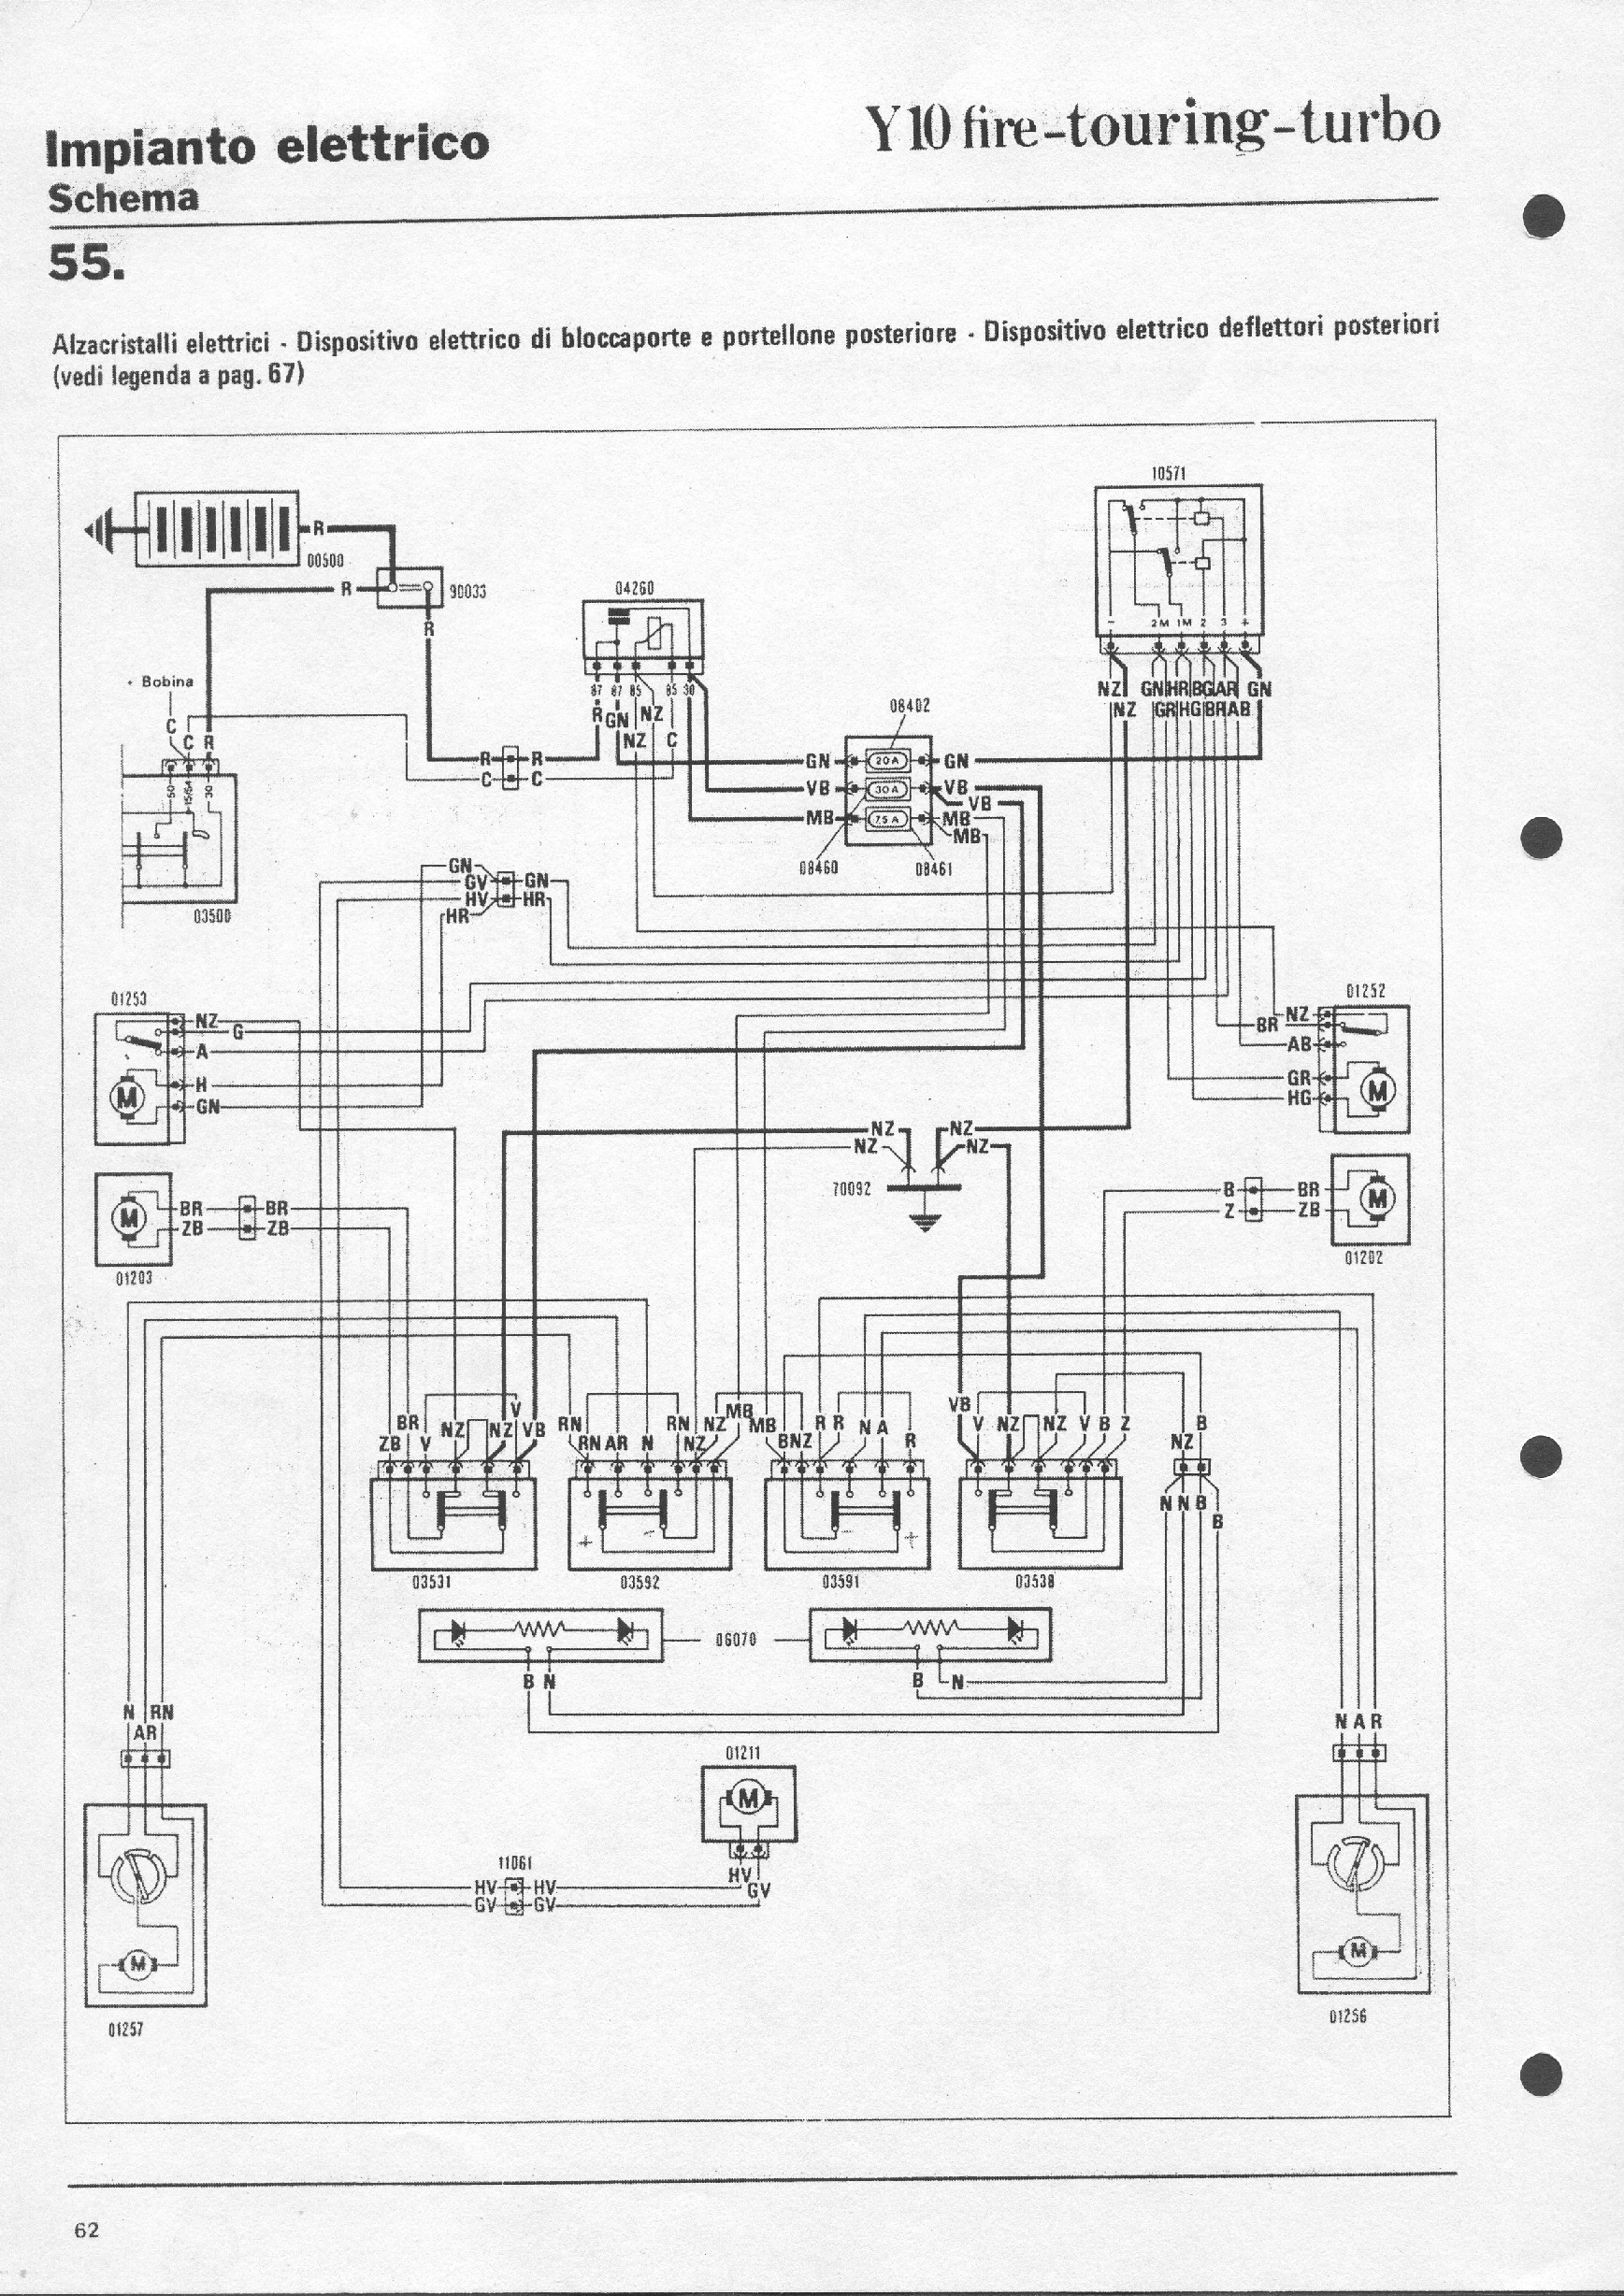 bmw f20 fuse box with Fusibili Bmw Serie 1 on F20 Fuse Box further Bmw F20 Fuse Box besides 99 Ford Contour Fuse Box For Sale Wiring Diagrams in addition Jeep Wiring Diagrams Gauges additionally 1997 Mazda Protege Fuse Box Diagram.